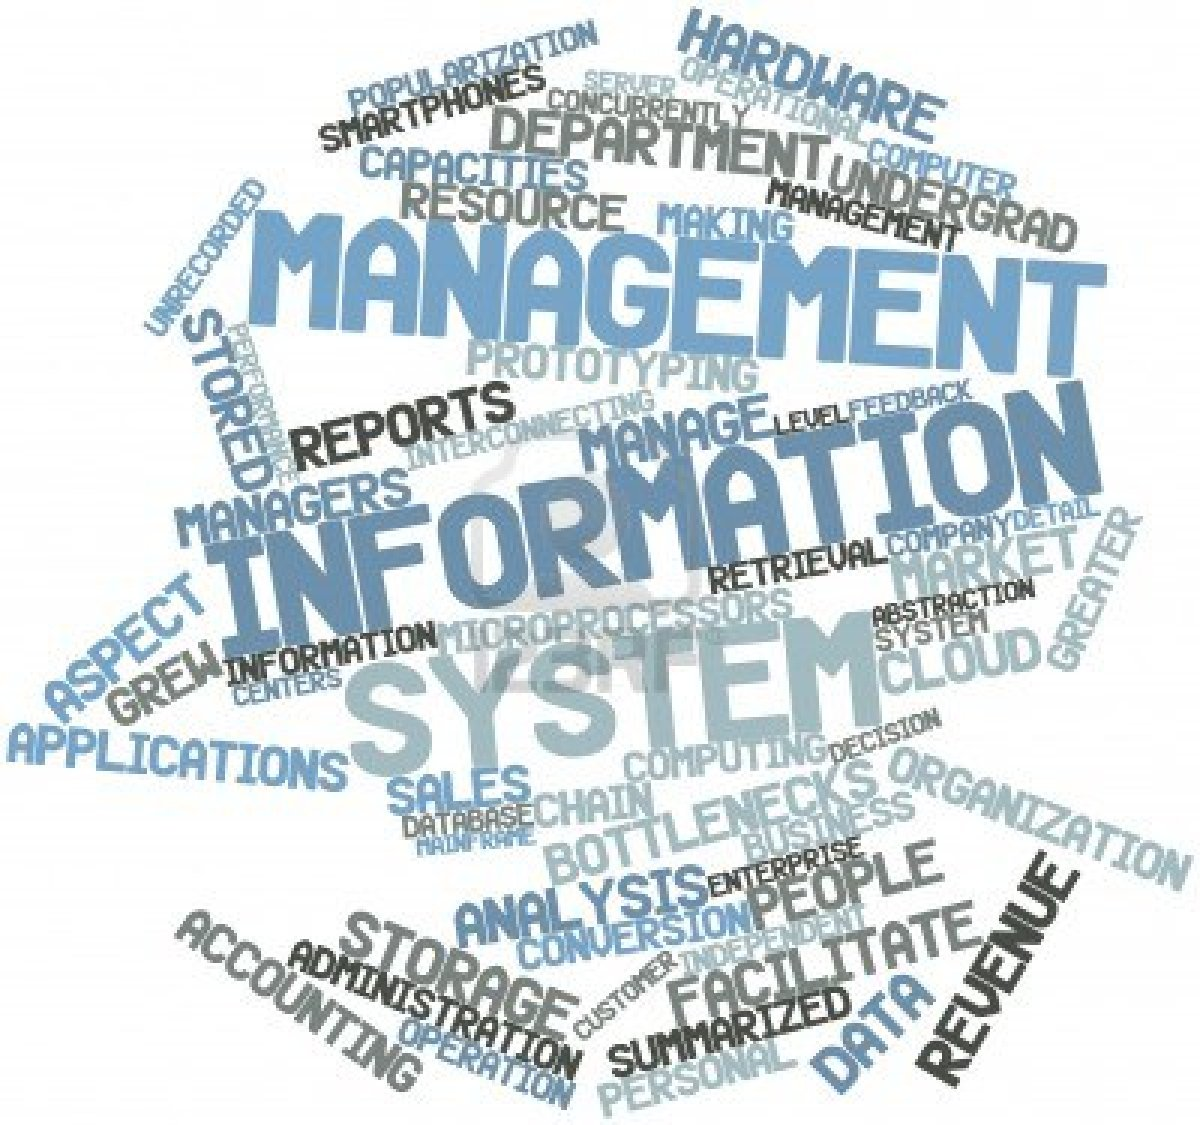 manage information systems Management information systems major courses — learn to use technology in support of organizational goals, such as information security, project management, and business data business core courses — develop your business expertise with a foundation in financial accounting, economics, business law, and statistics.